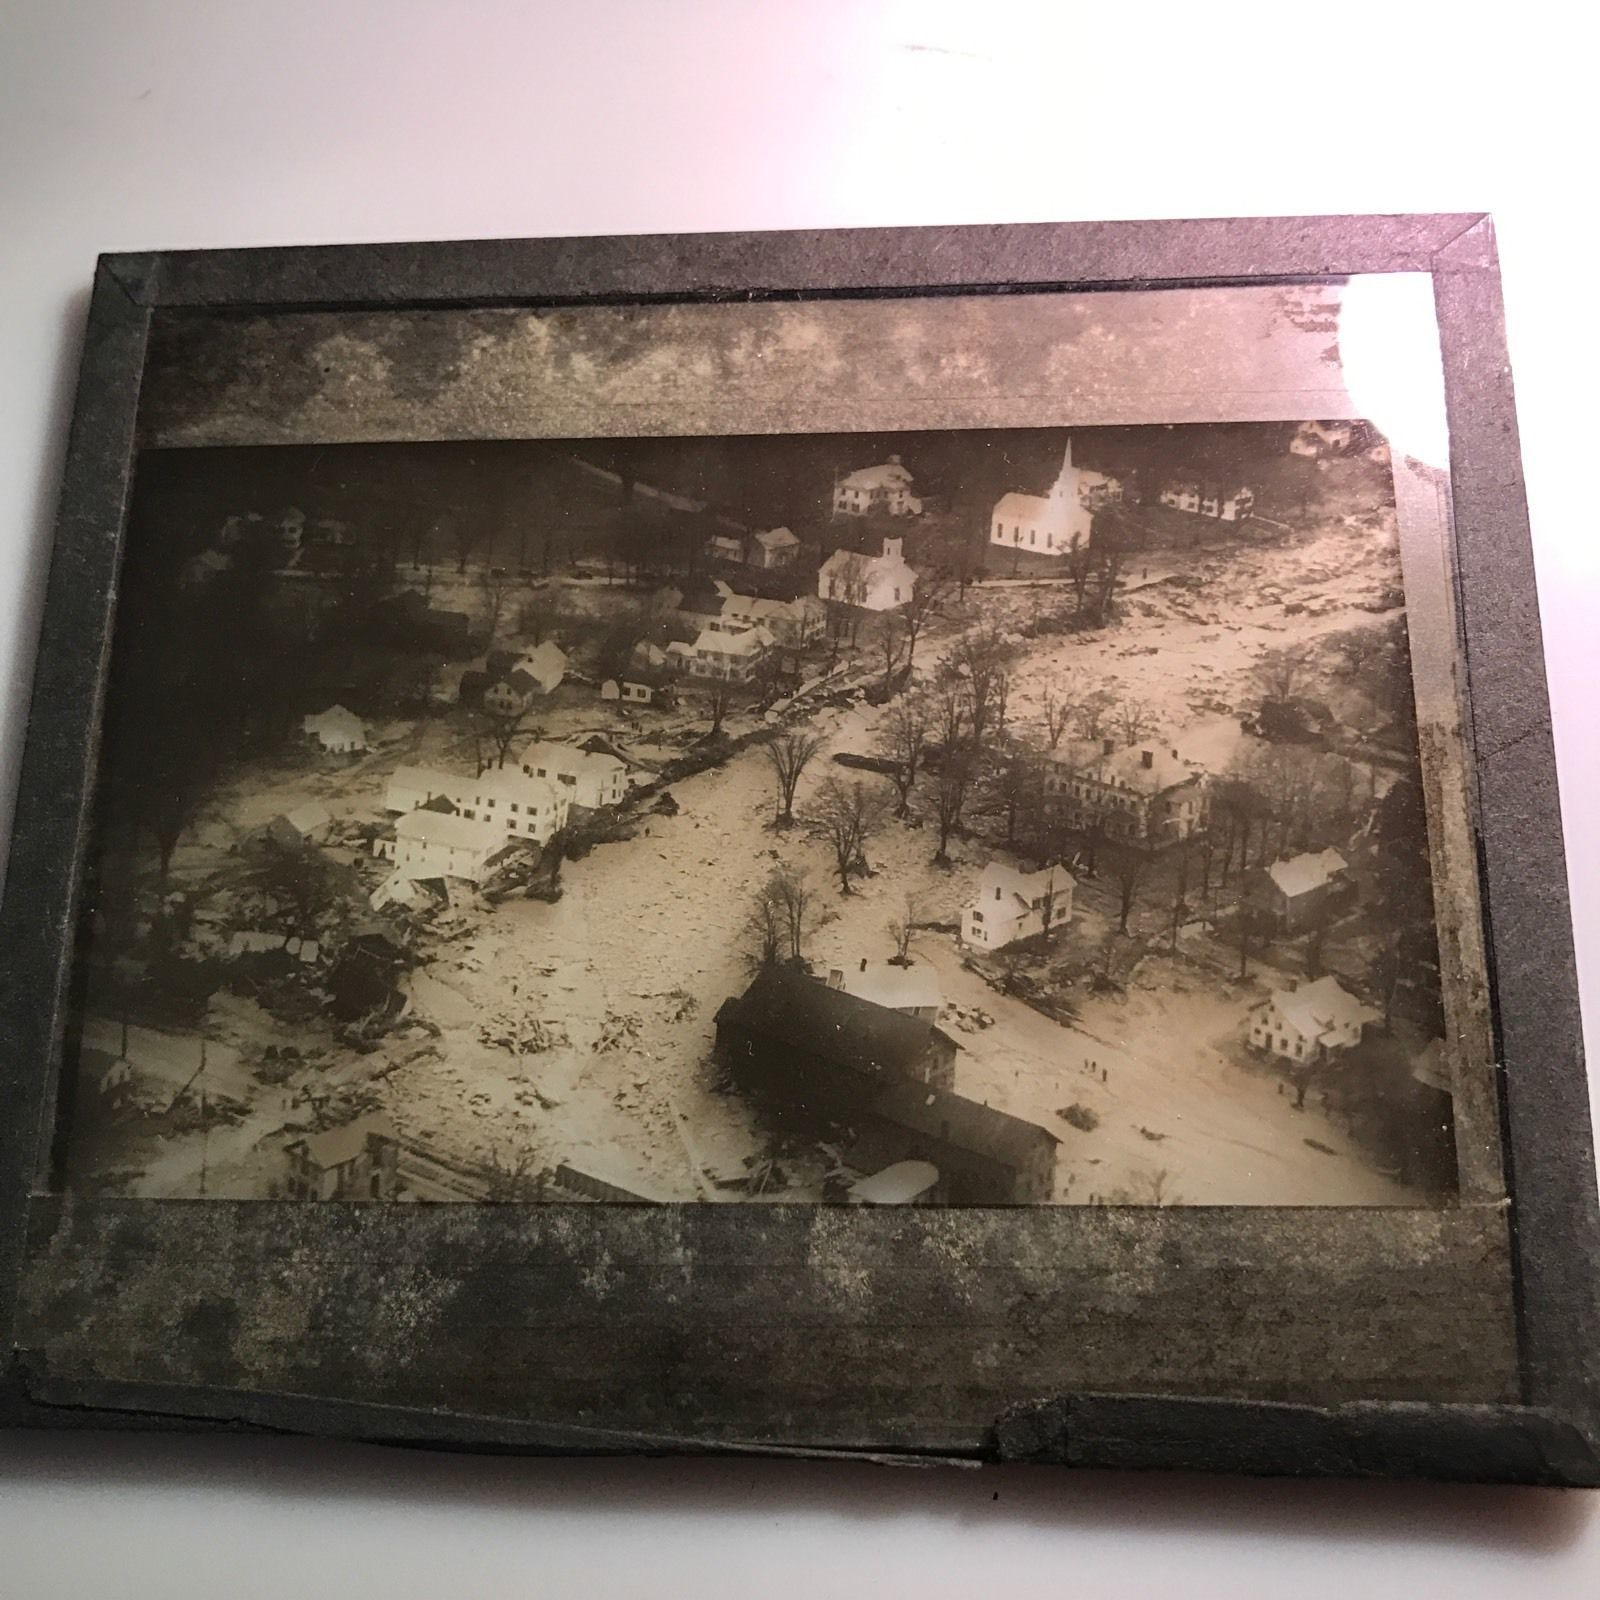 Vtg Magic Lantern Glass Photo Slide Flood River Through Town Destruction